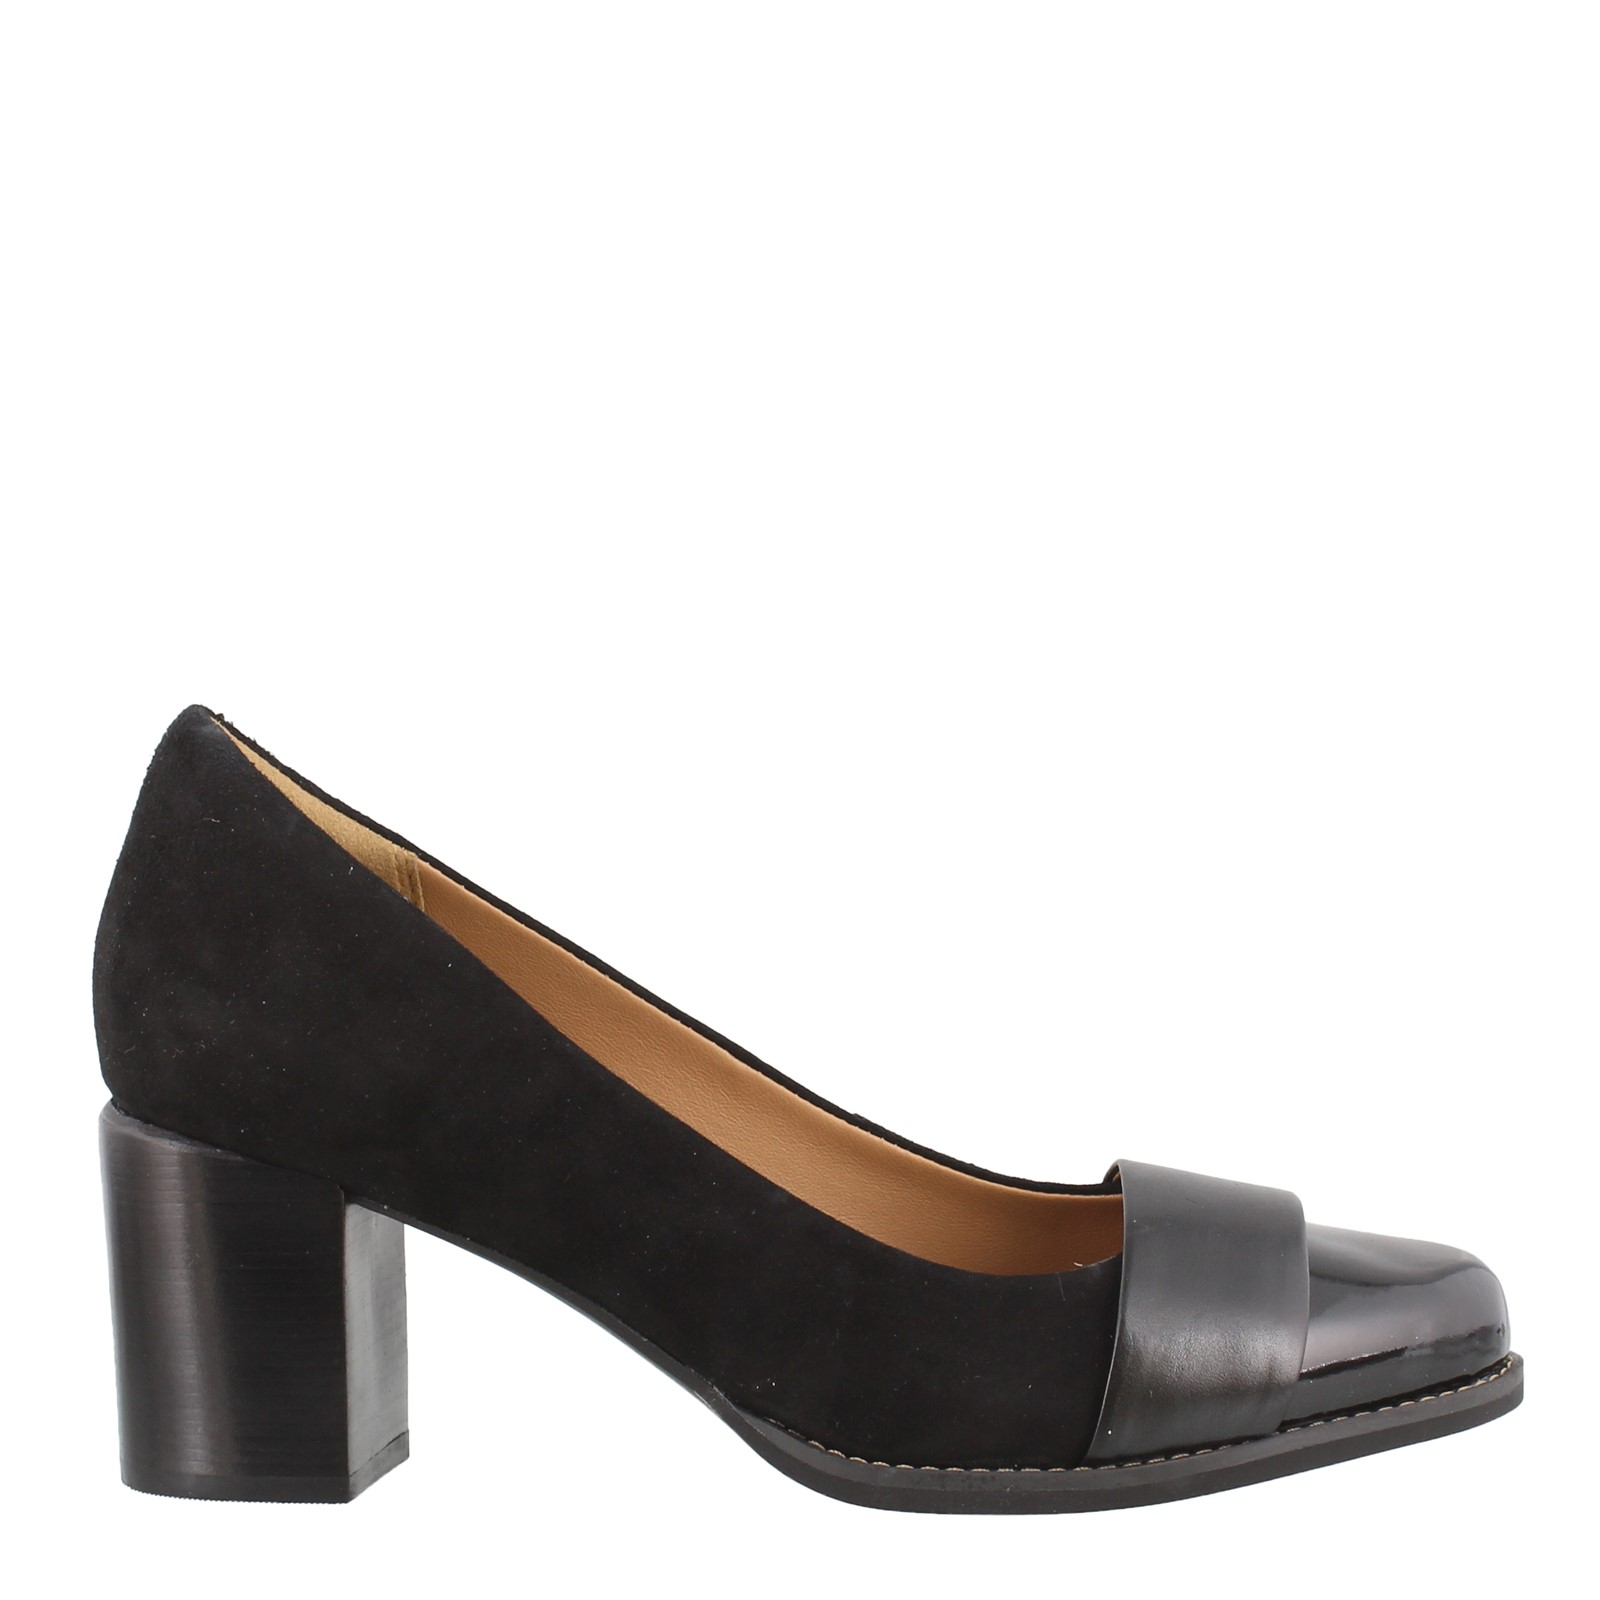 Women's Clarks, Tarah Brae Pumps